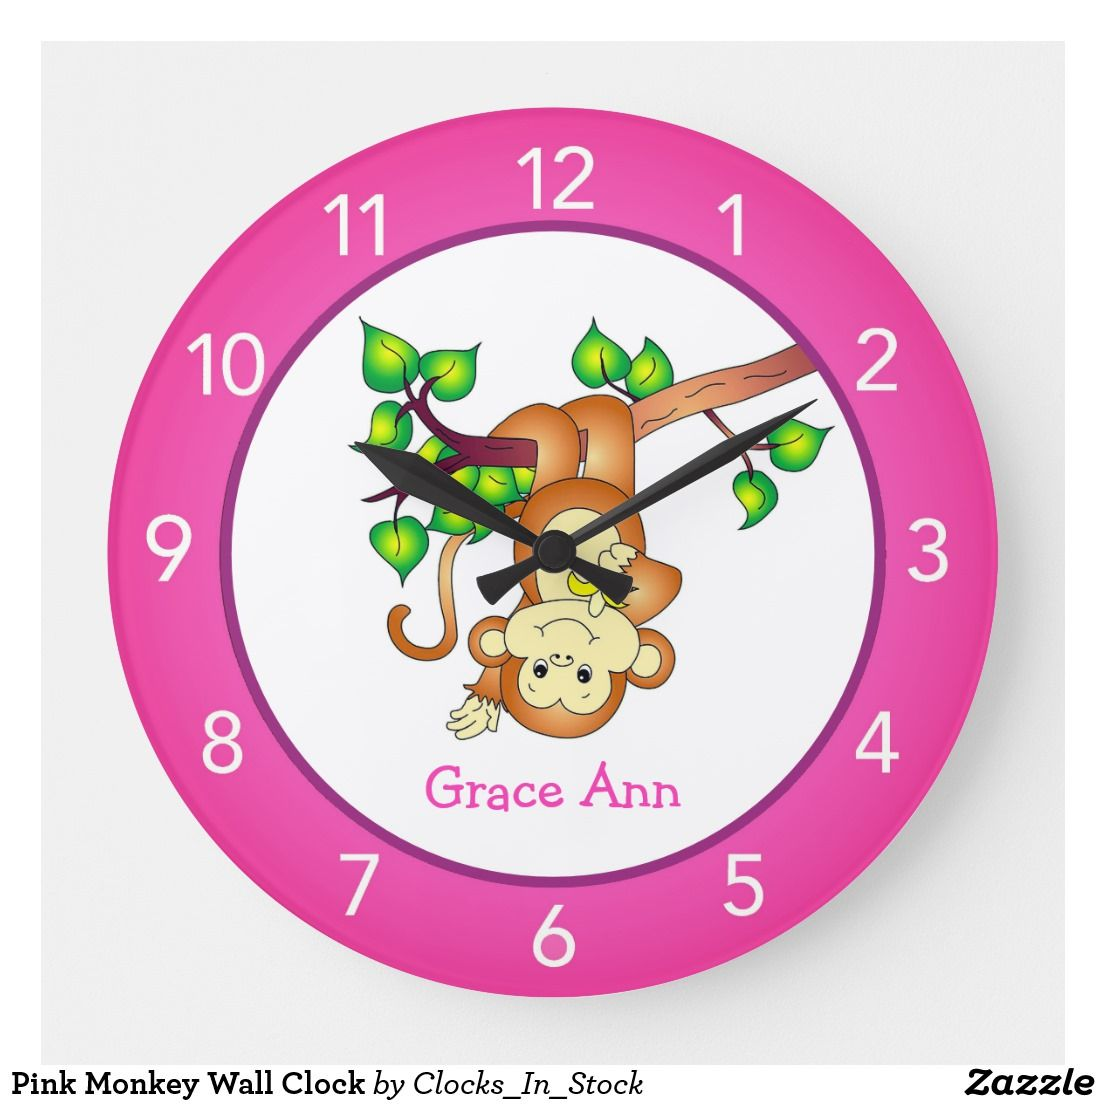 Pink Monkey Wall Clock Zazzle Com Monkey Wall Pink Monkeys Wall Clock